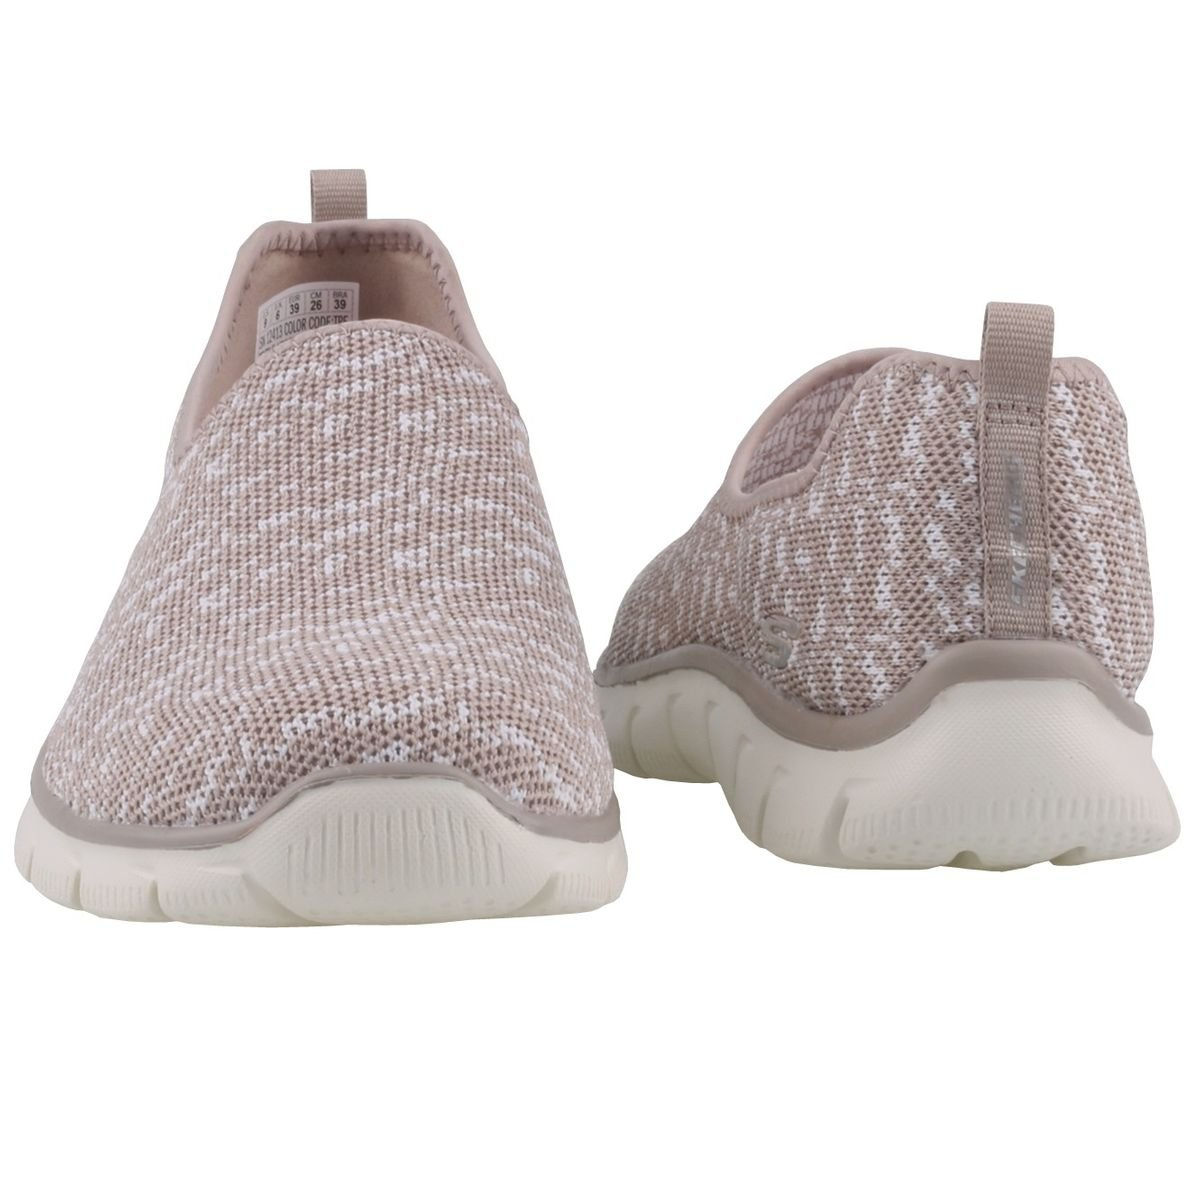 Skechers Damen Slipper - Empire Sweet Scene Beige/Weiß - Slipper a92b4d